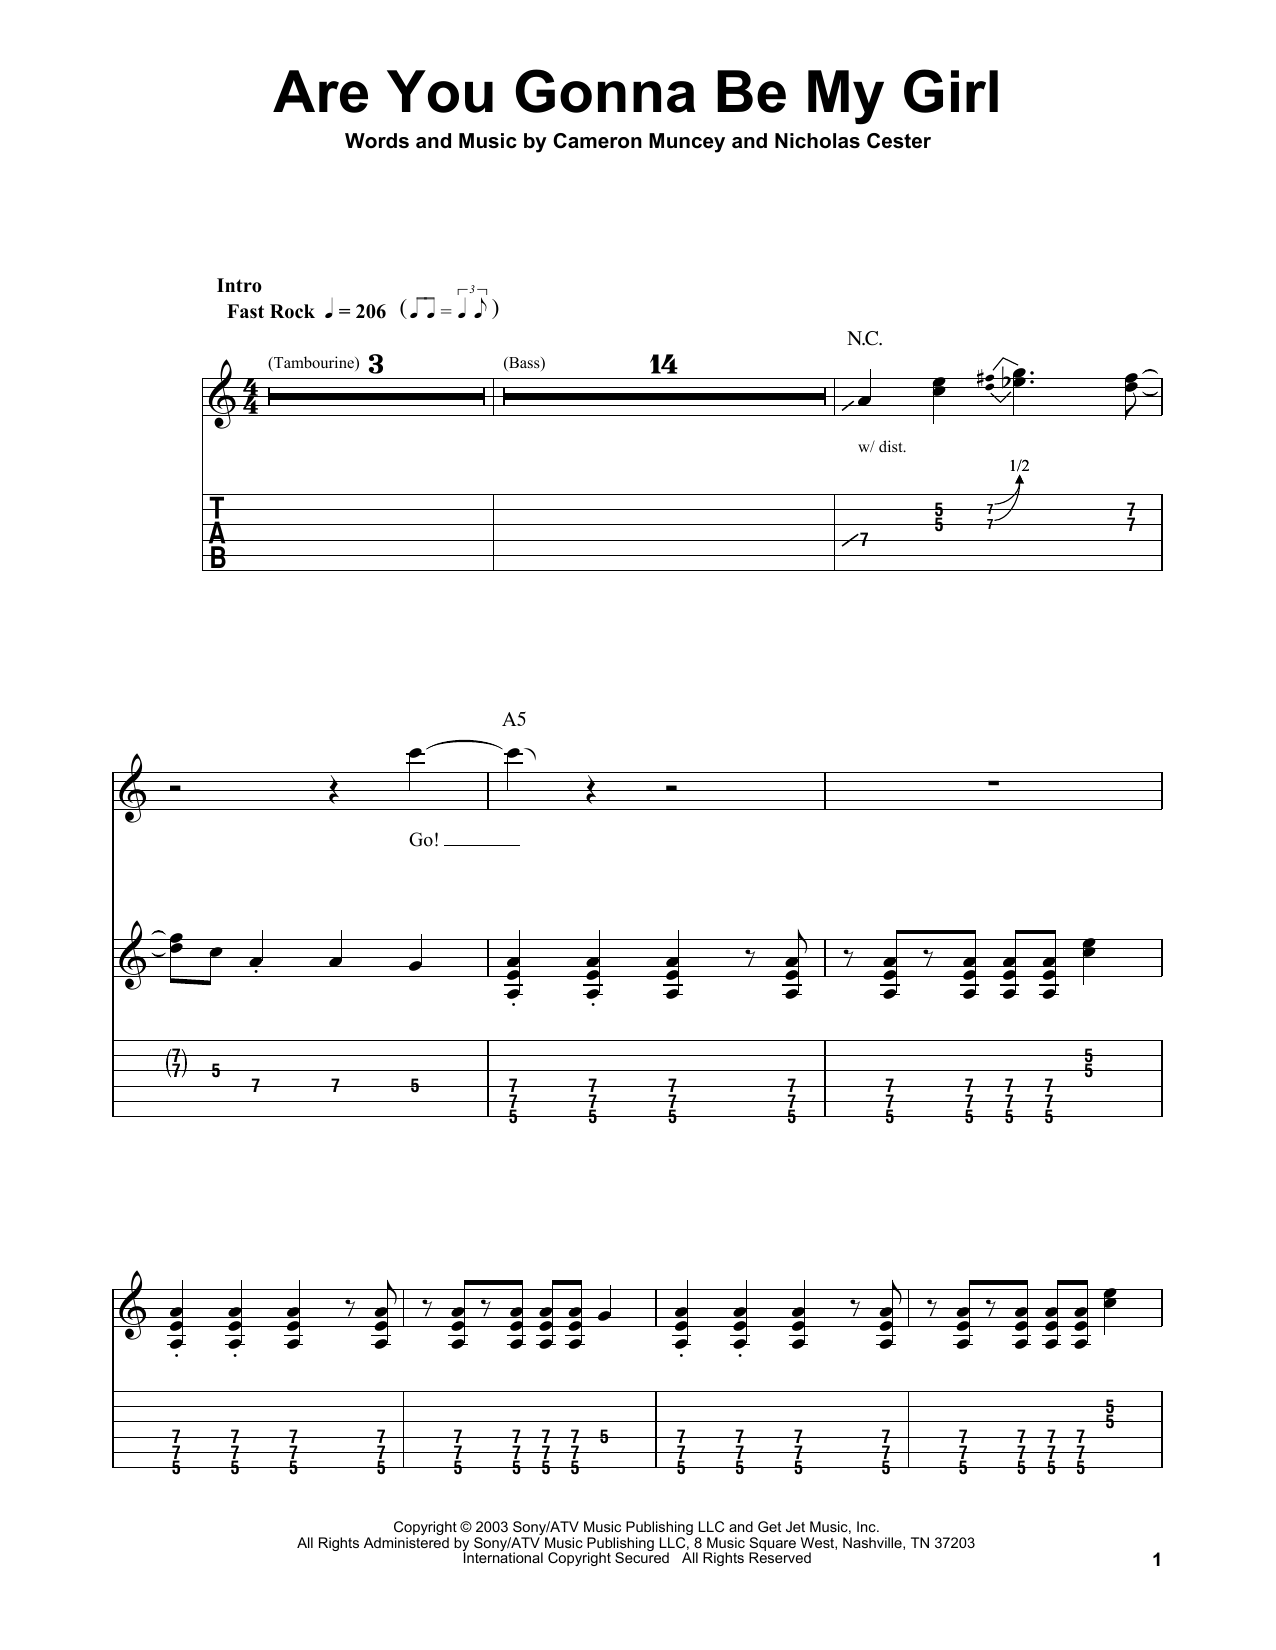 Jet Are You Gonna Be My Girl Sheet Music Notes Chords Printable